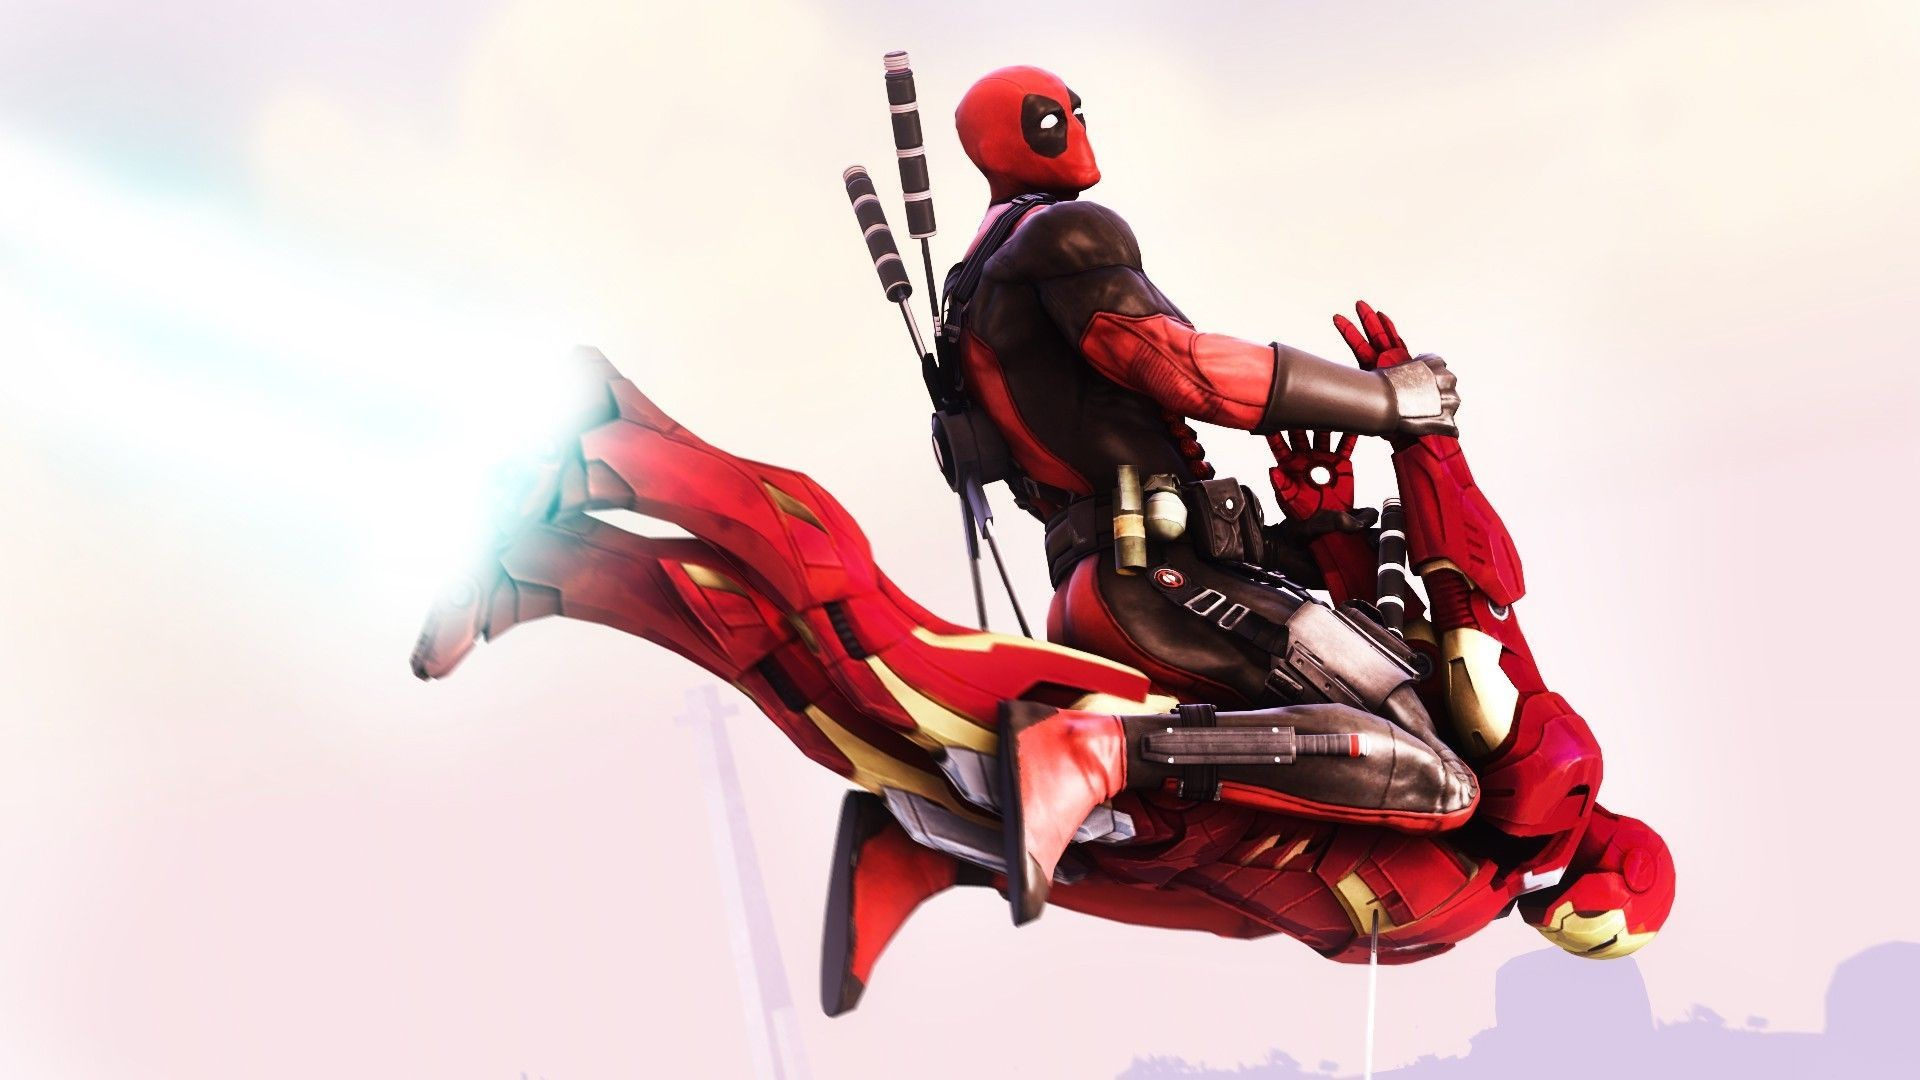 1920x1080 undefined Deadpool Wallpaper (42 Wallpapers) | Adorable Wallpapers